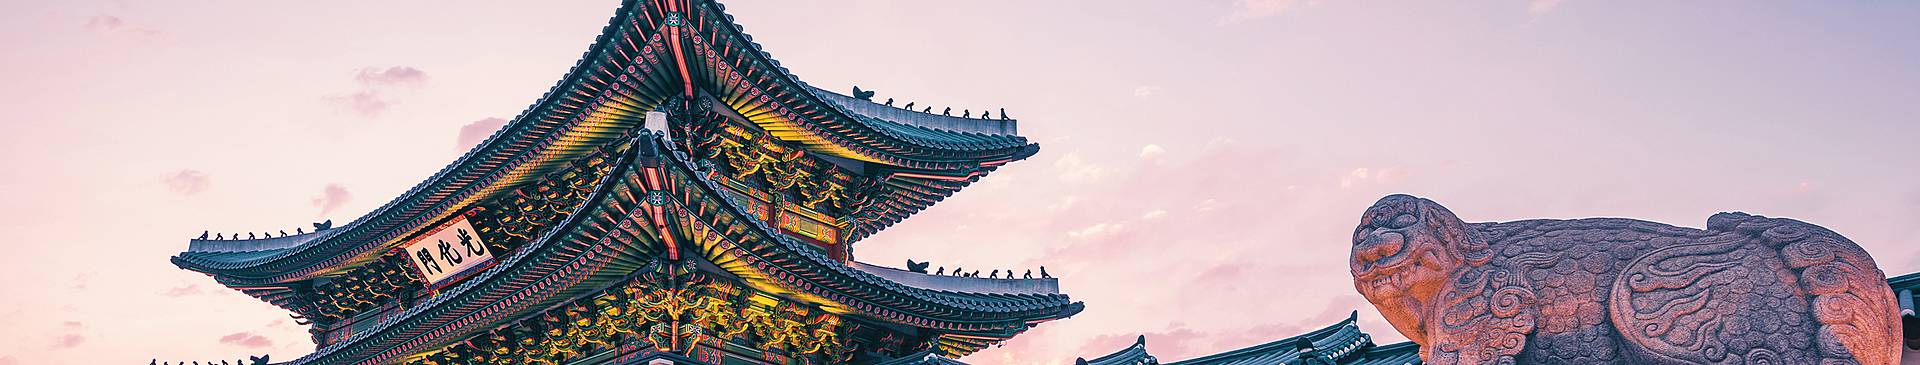 Historical sites in South Korea